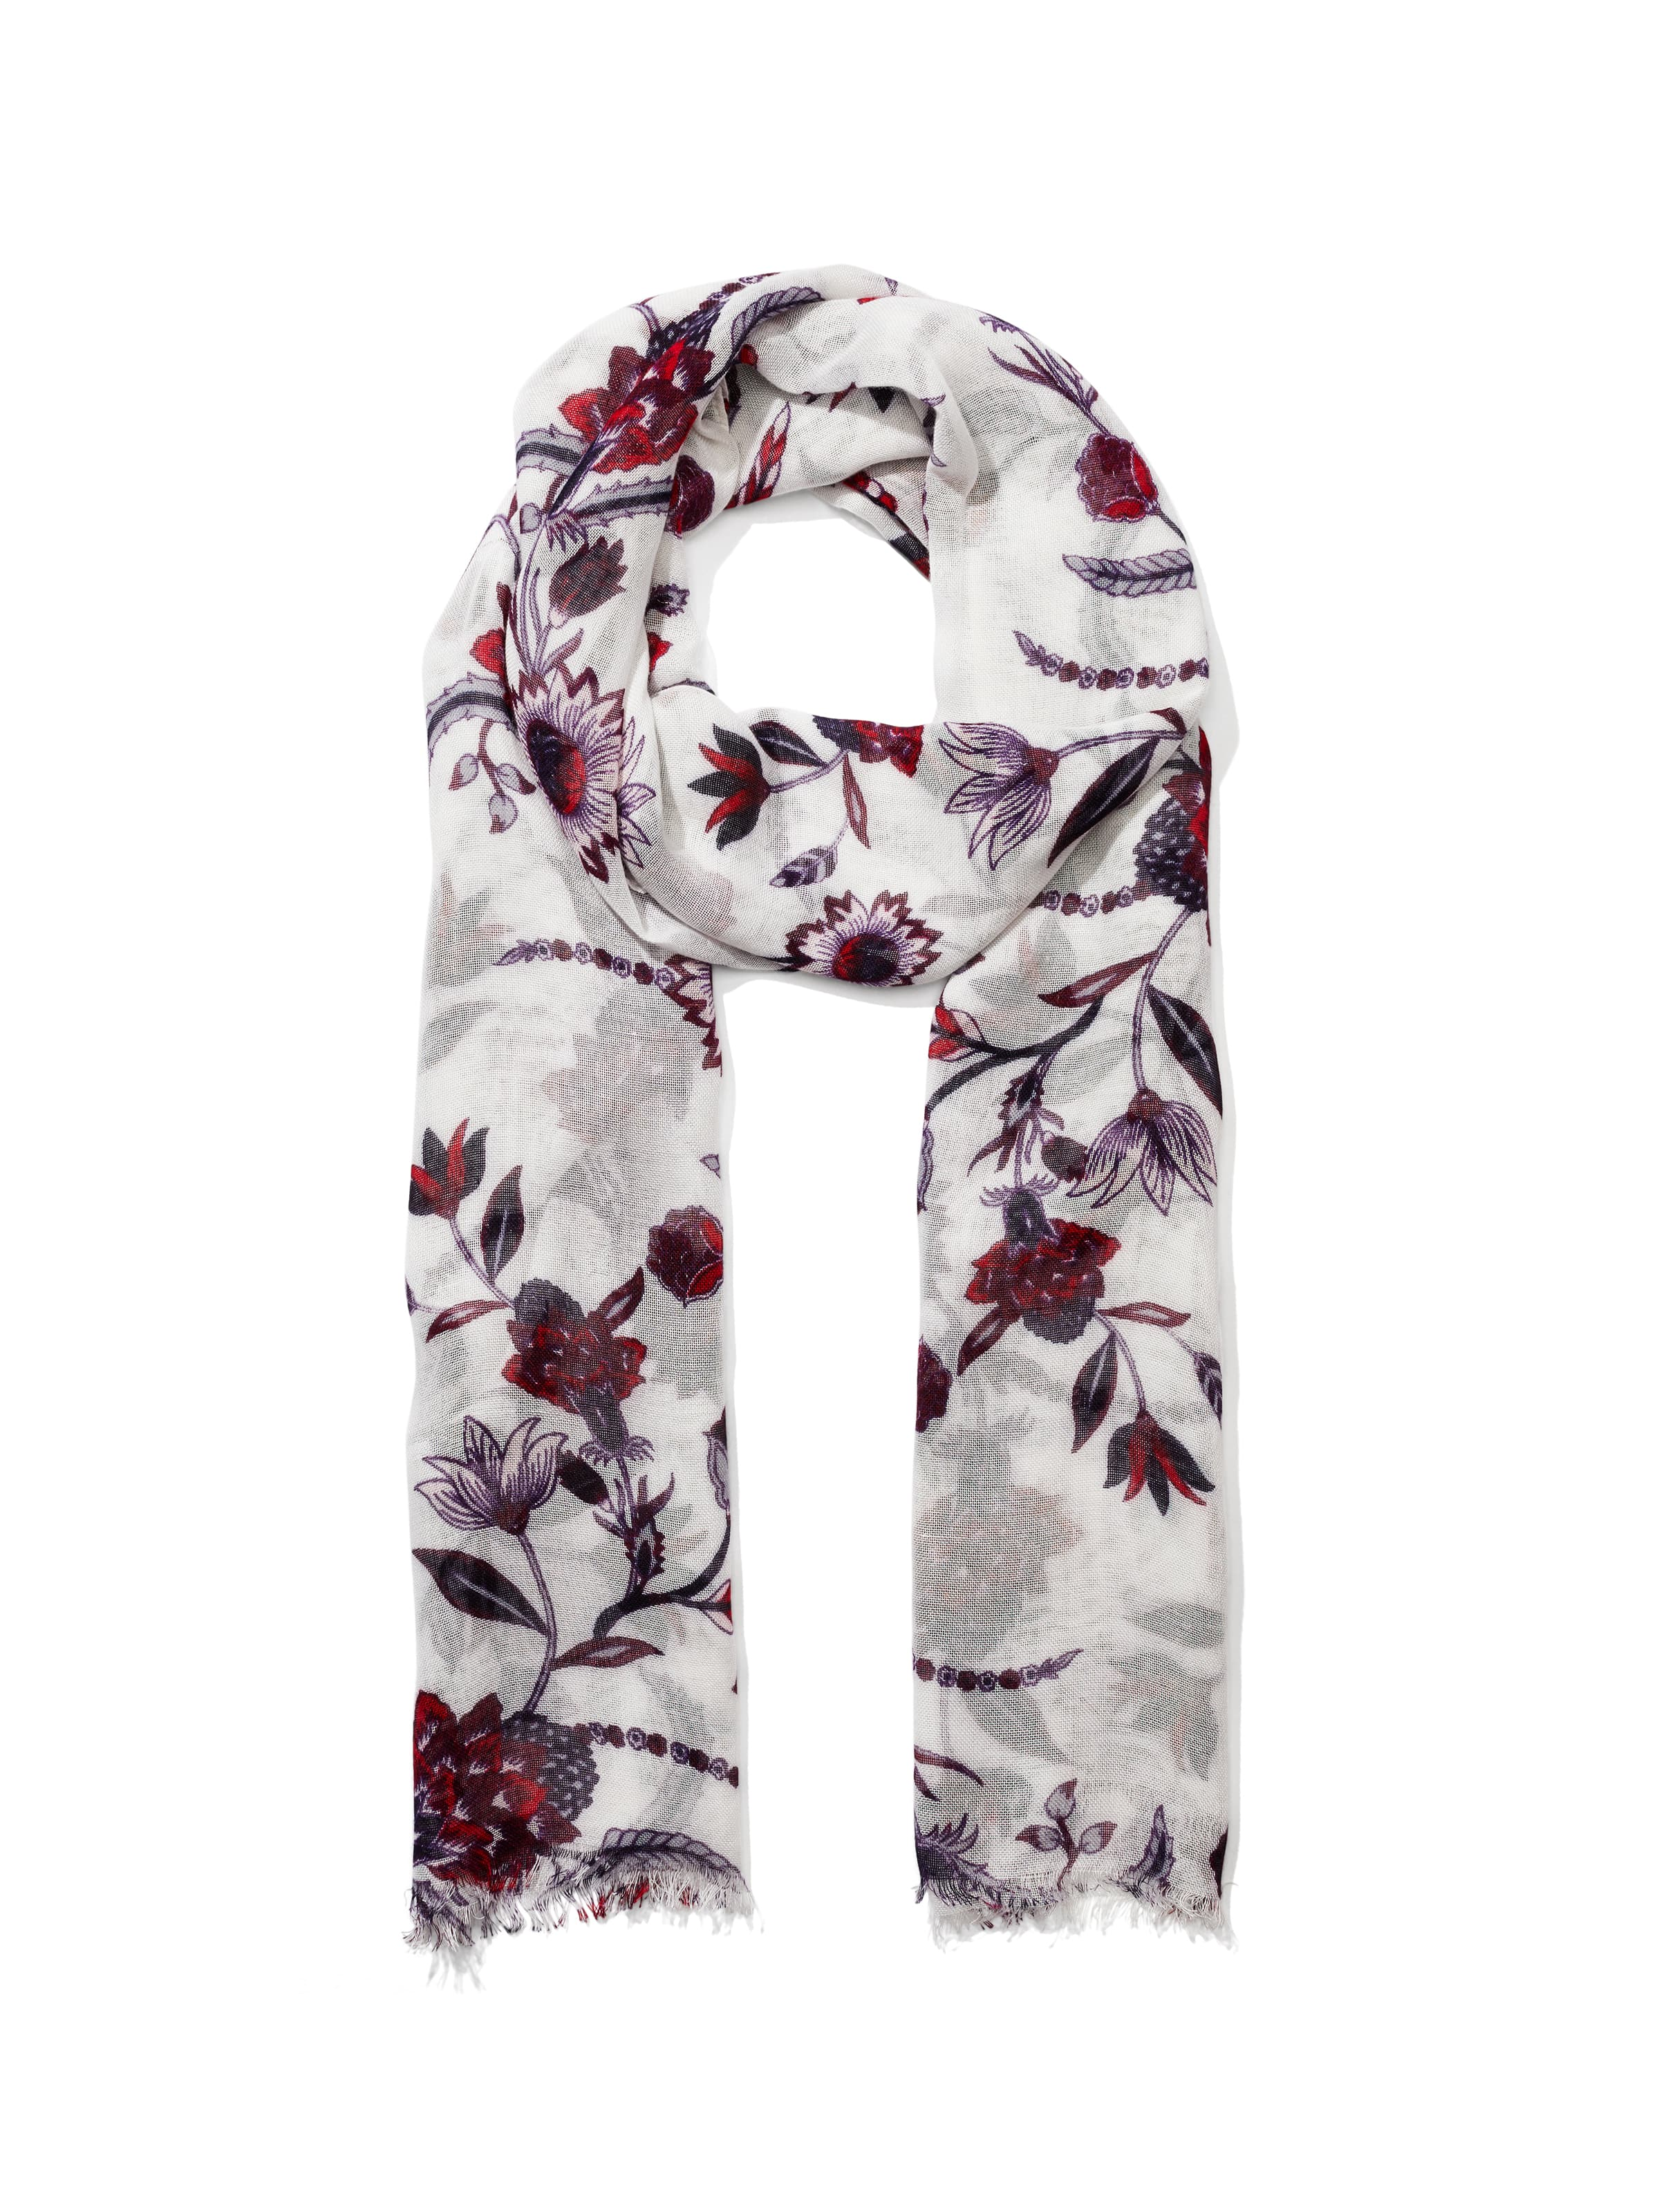 Ornate Bloom Viscose Scarf